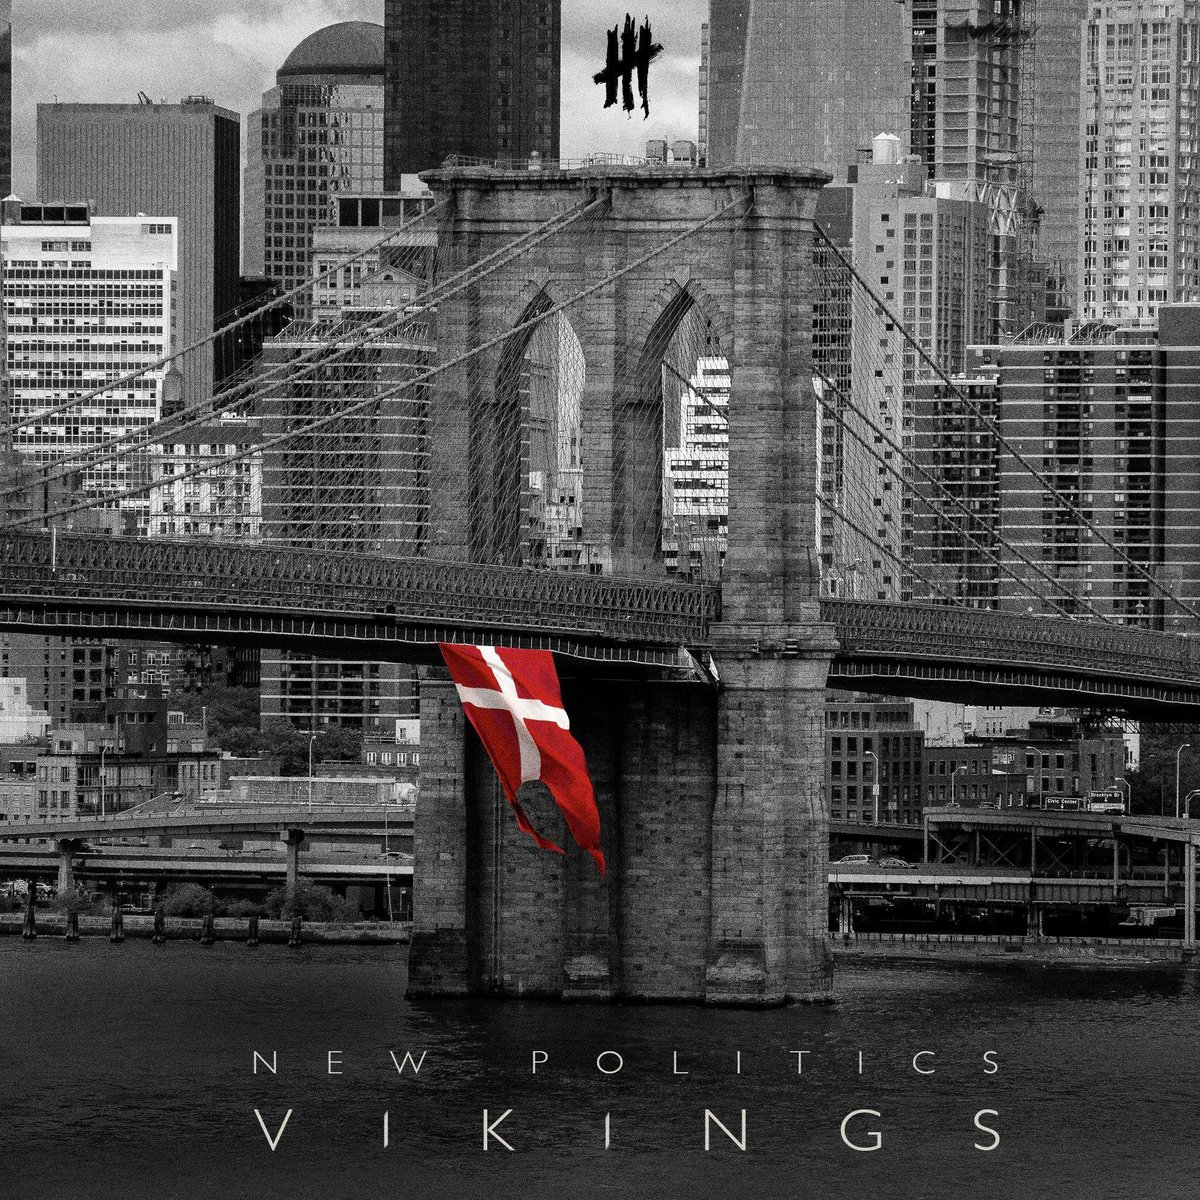 TODAY'S THE DAY!!!! #Vikings is out now!!! http://t.co/QpZTeIvf4h http://t.co/1z48Y7ItQF